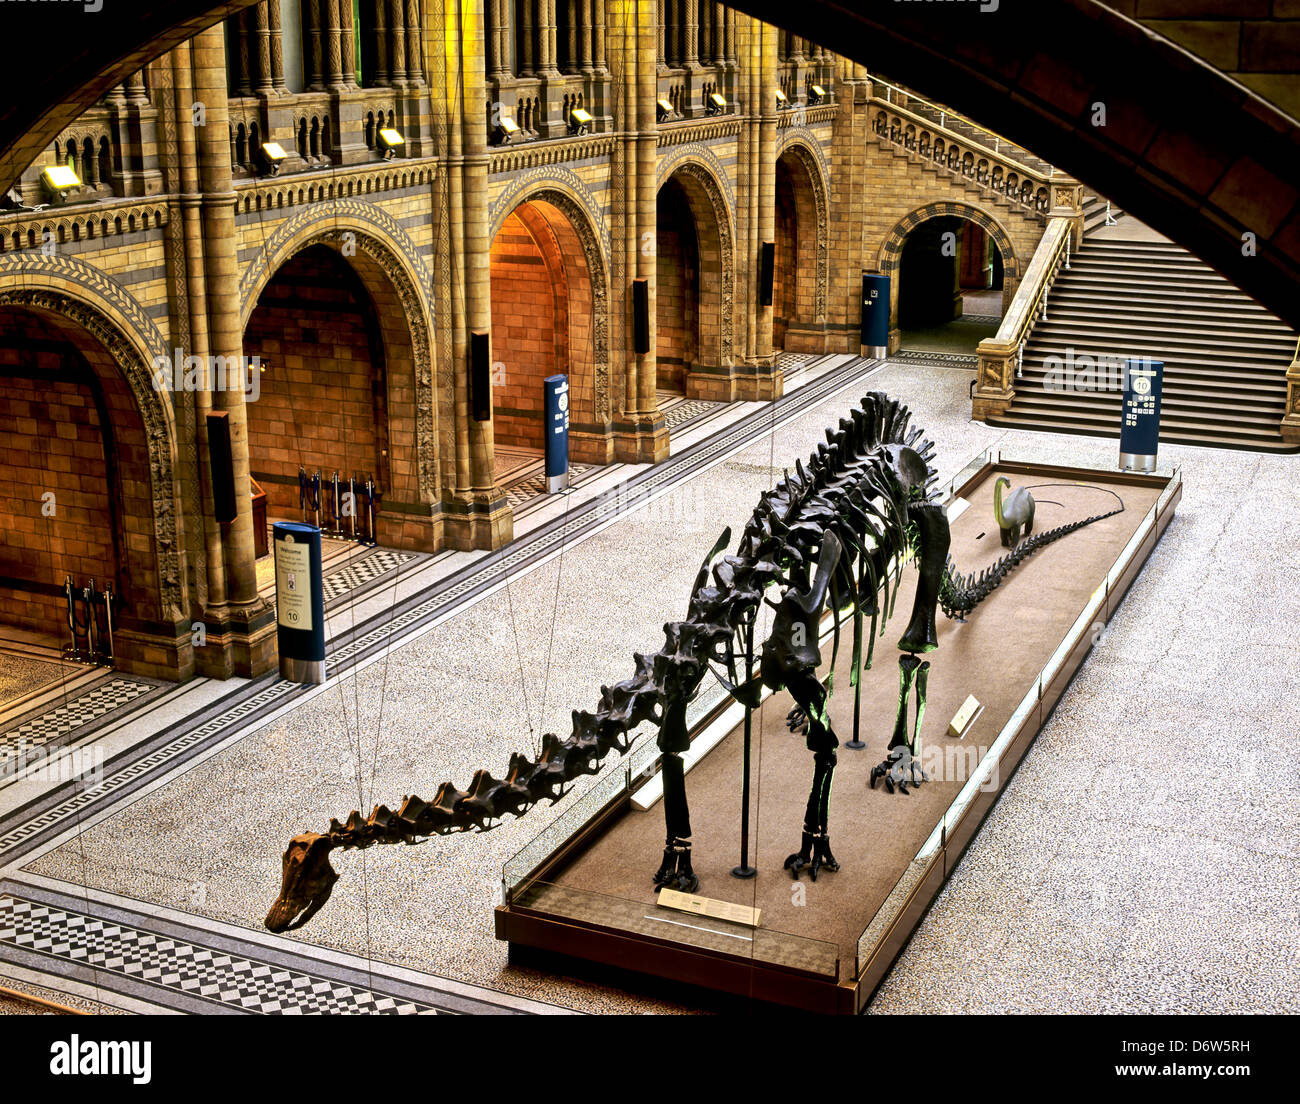 8414. Diplodocus skeleton, Natural History Museum, London, England, Europe - Stock Image